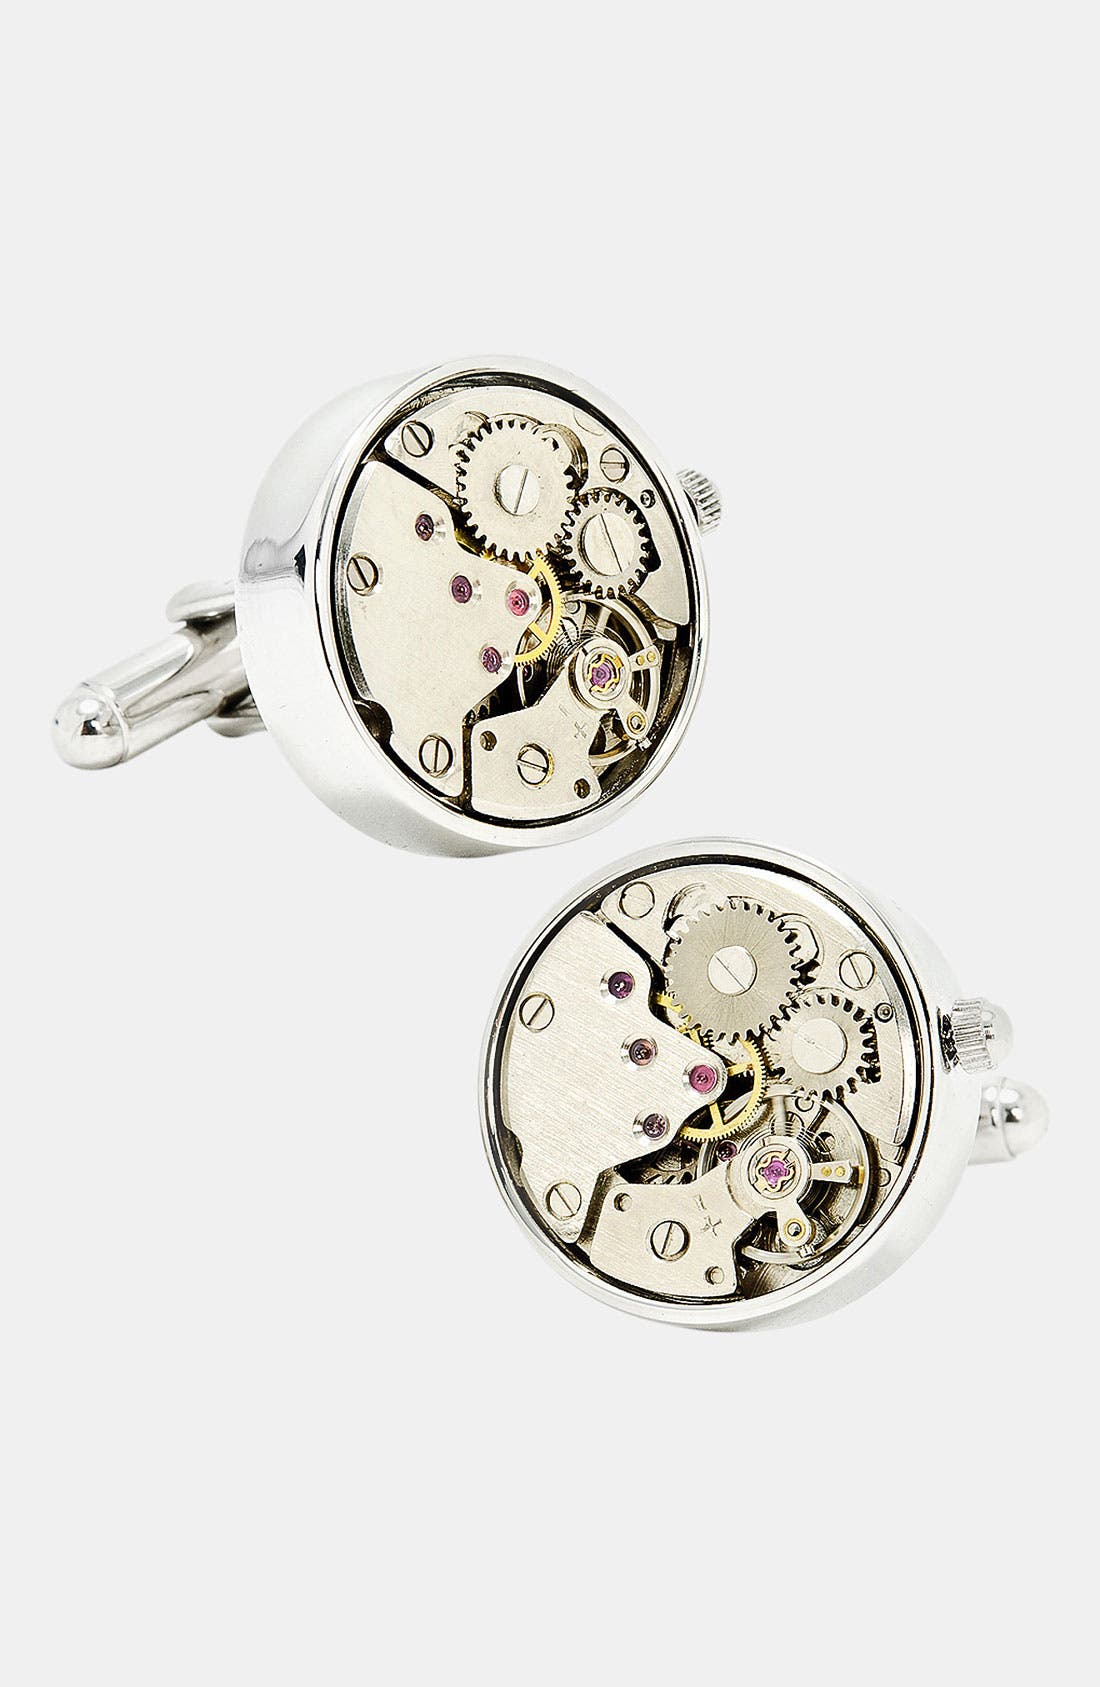 OX AND BULL TRADING CO.,                             Penny Black 40 Steampunk Watch Movement Cuff Links,                             Main thumbnail 1, color,                             040